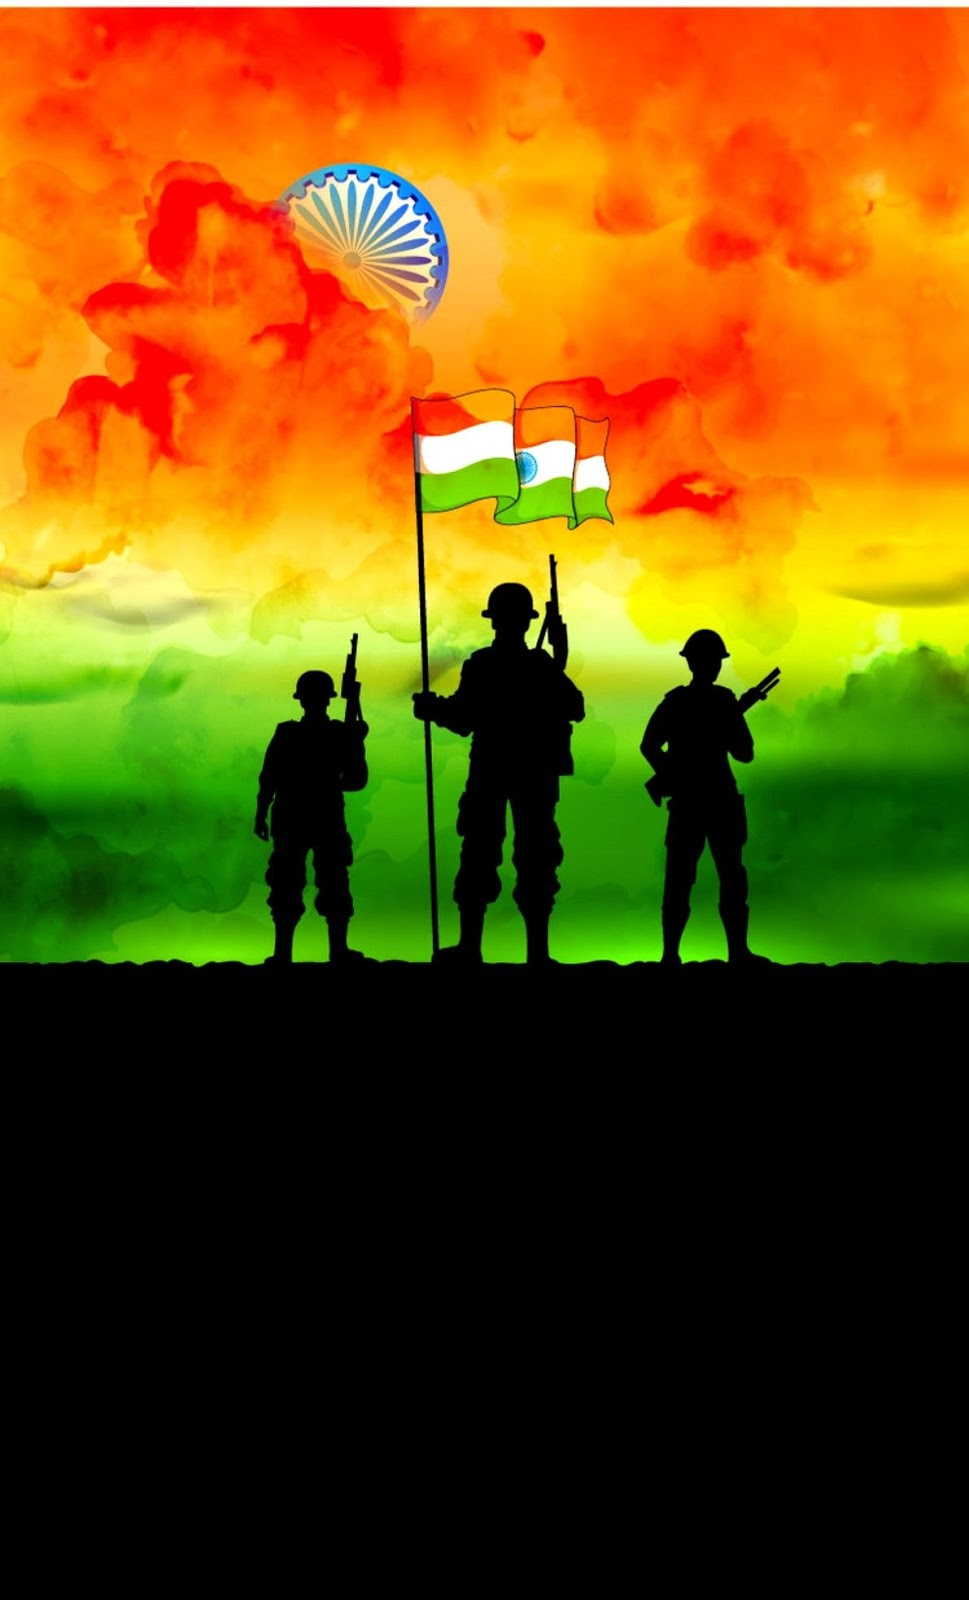 vande matram independence day hd images army